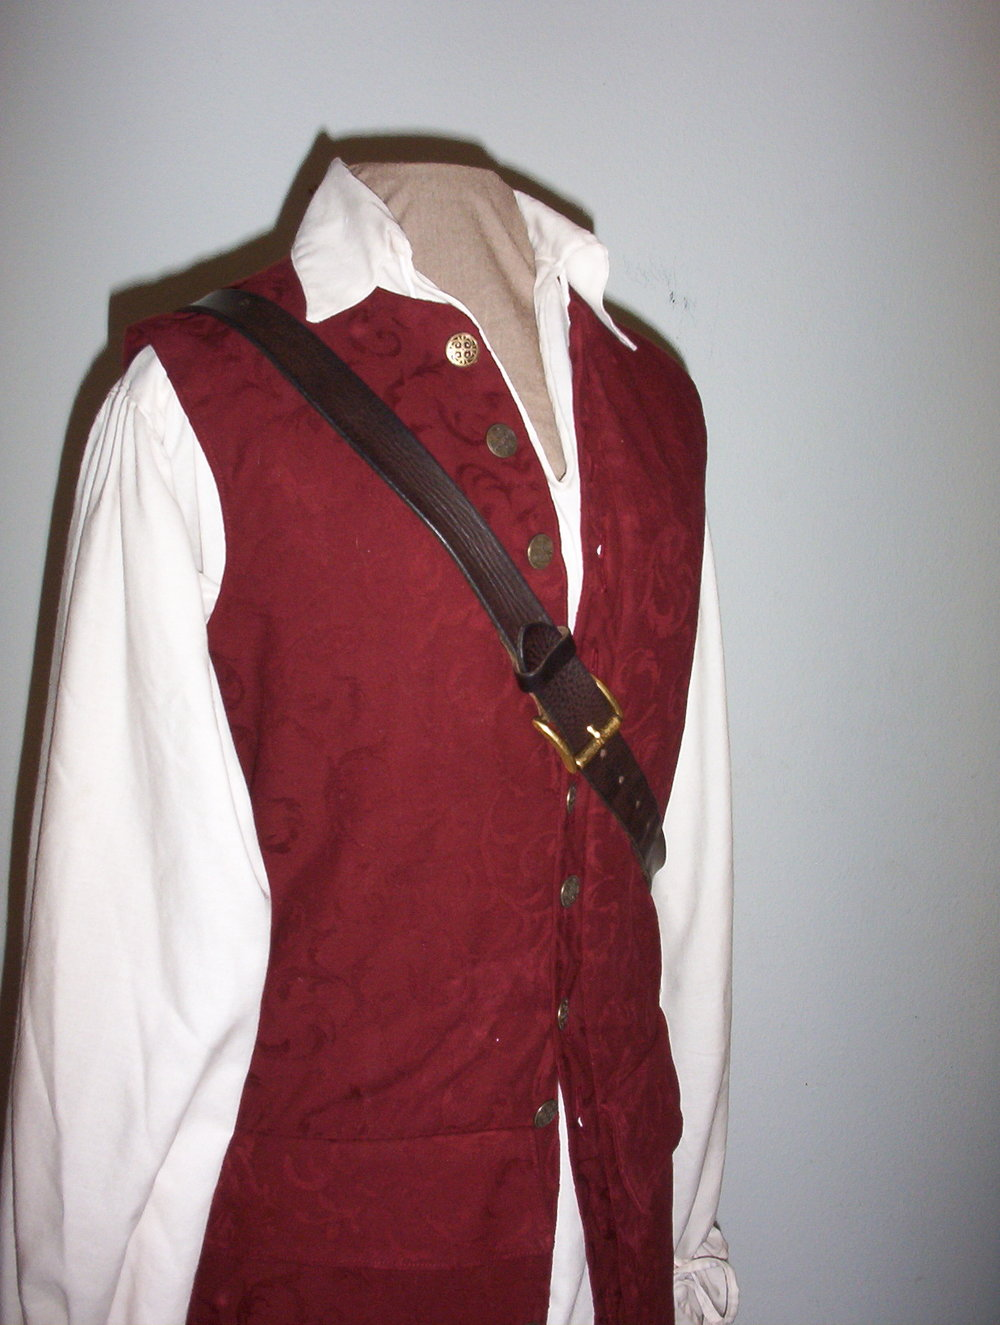 Pirate costume2 3009 (2).jpg